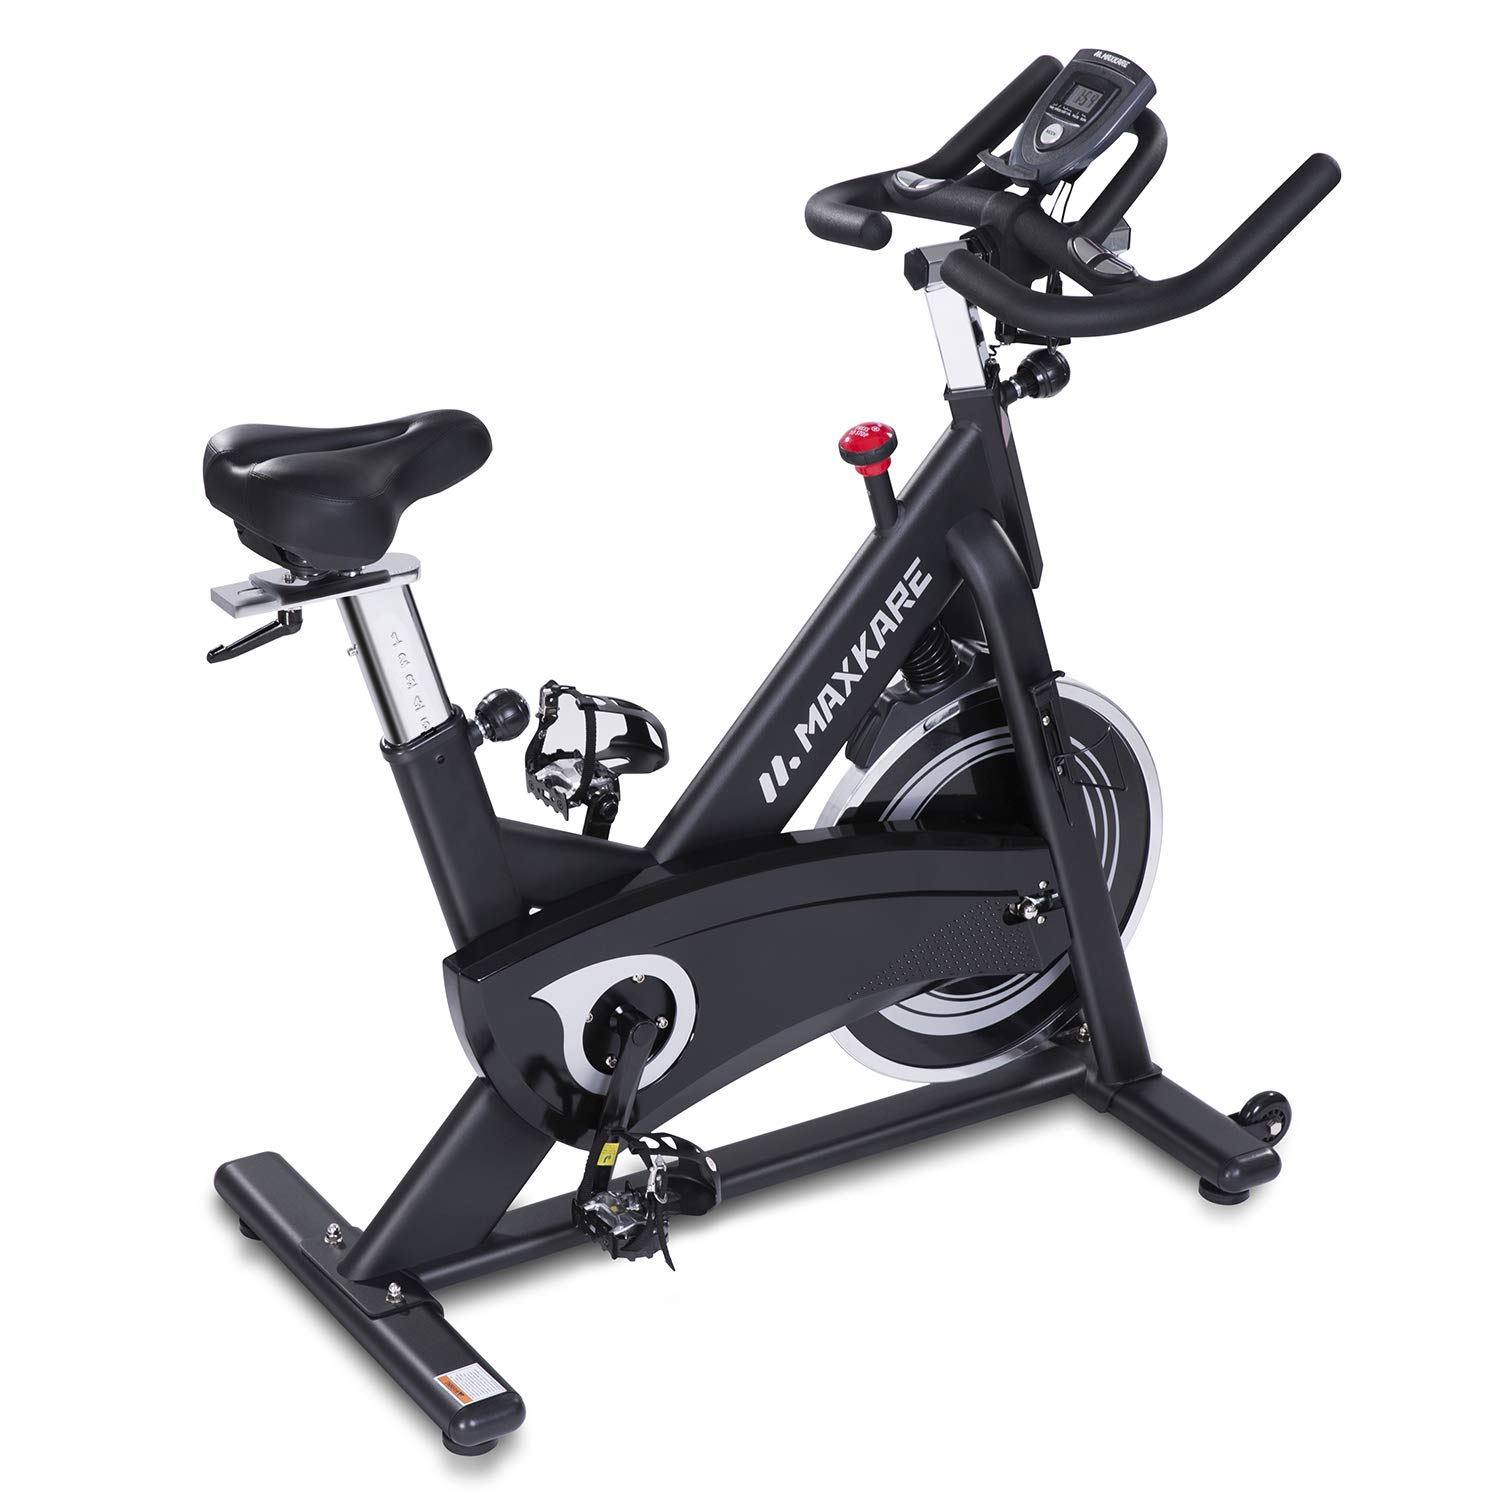 MaxKare Stationary Bike Belt Drive Spin Bike with Quiet Flywheel & Pulse Sensor/LCD Monitor/Ipad Mount Pro Indoor Cycling Bike Exercise Bike w/Adjustable Handlebar for Home Cardio Gym Workout (Black)